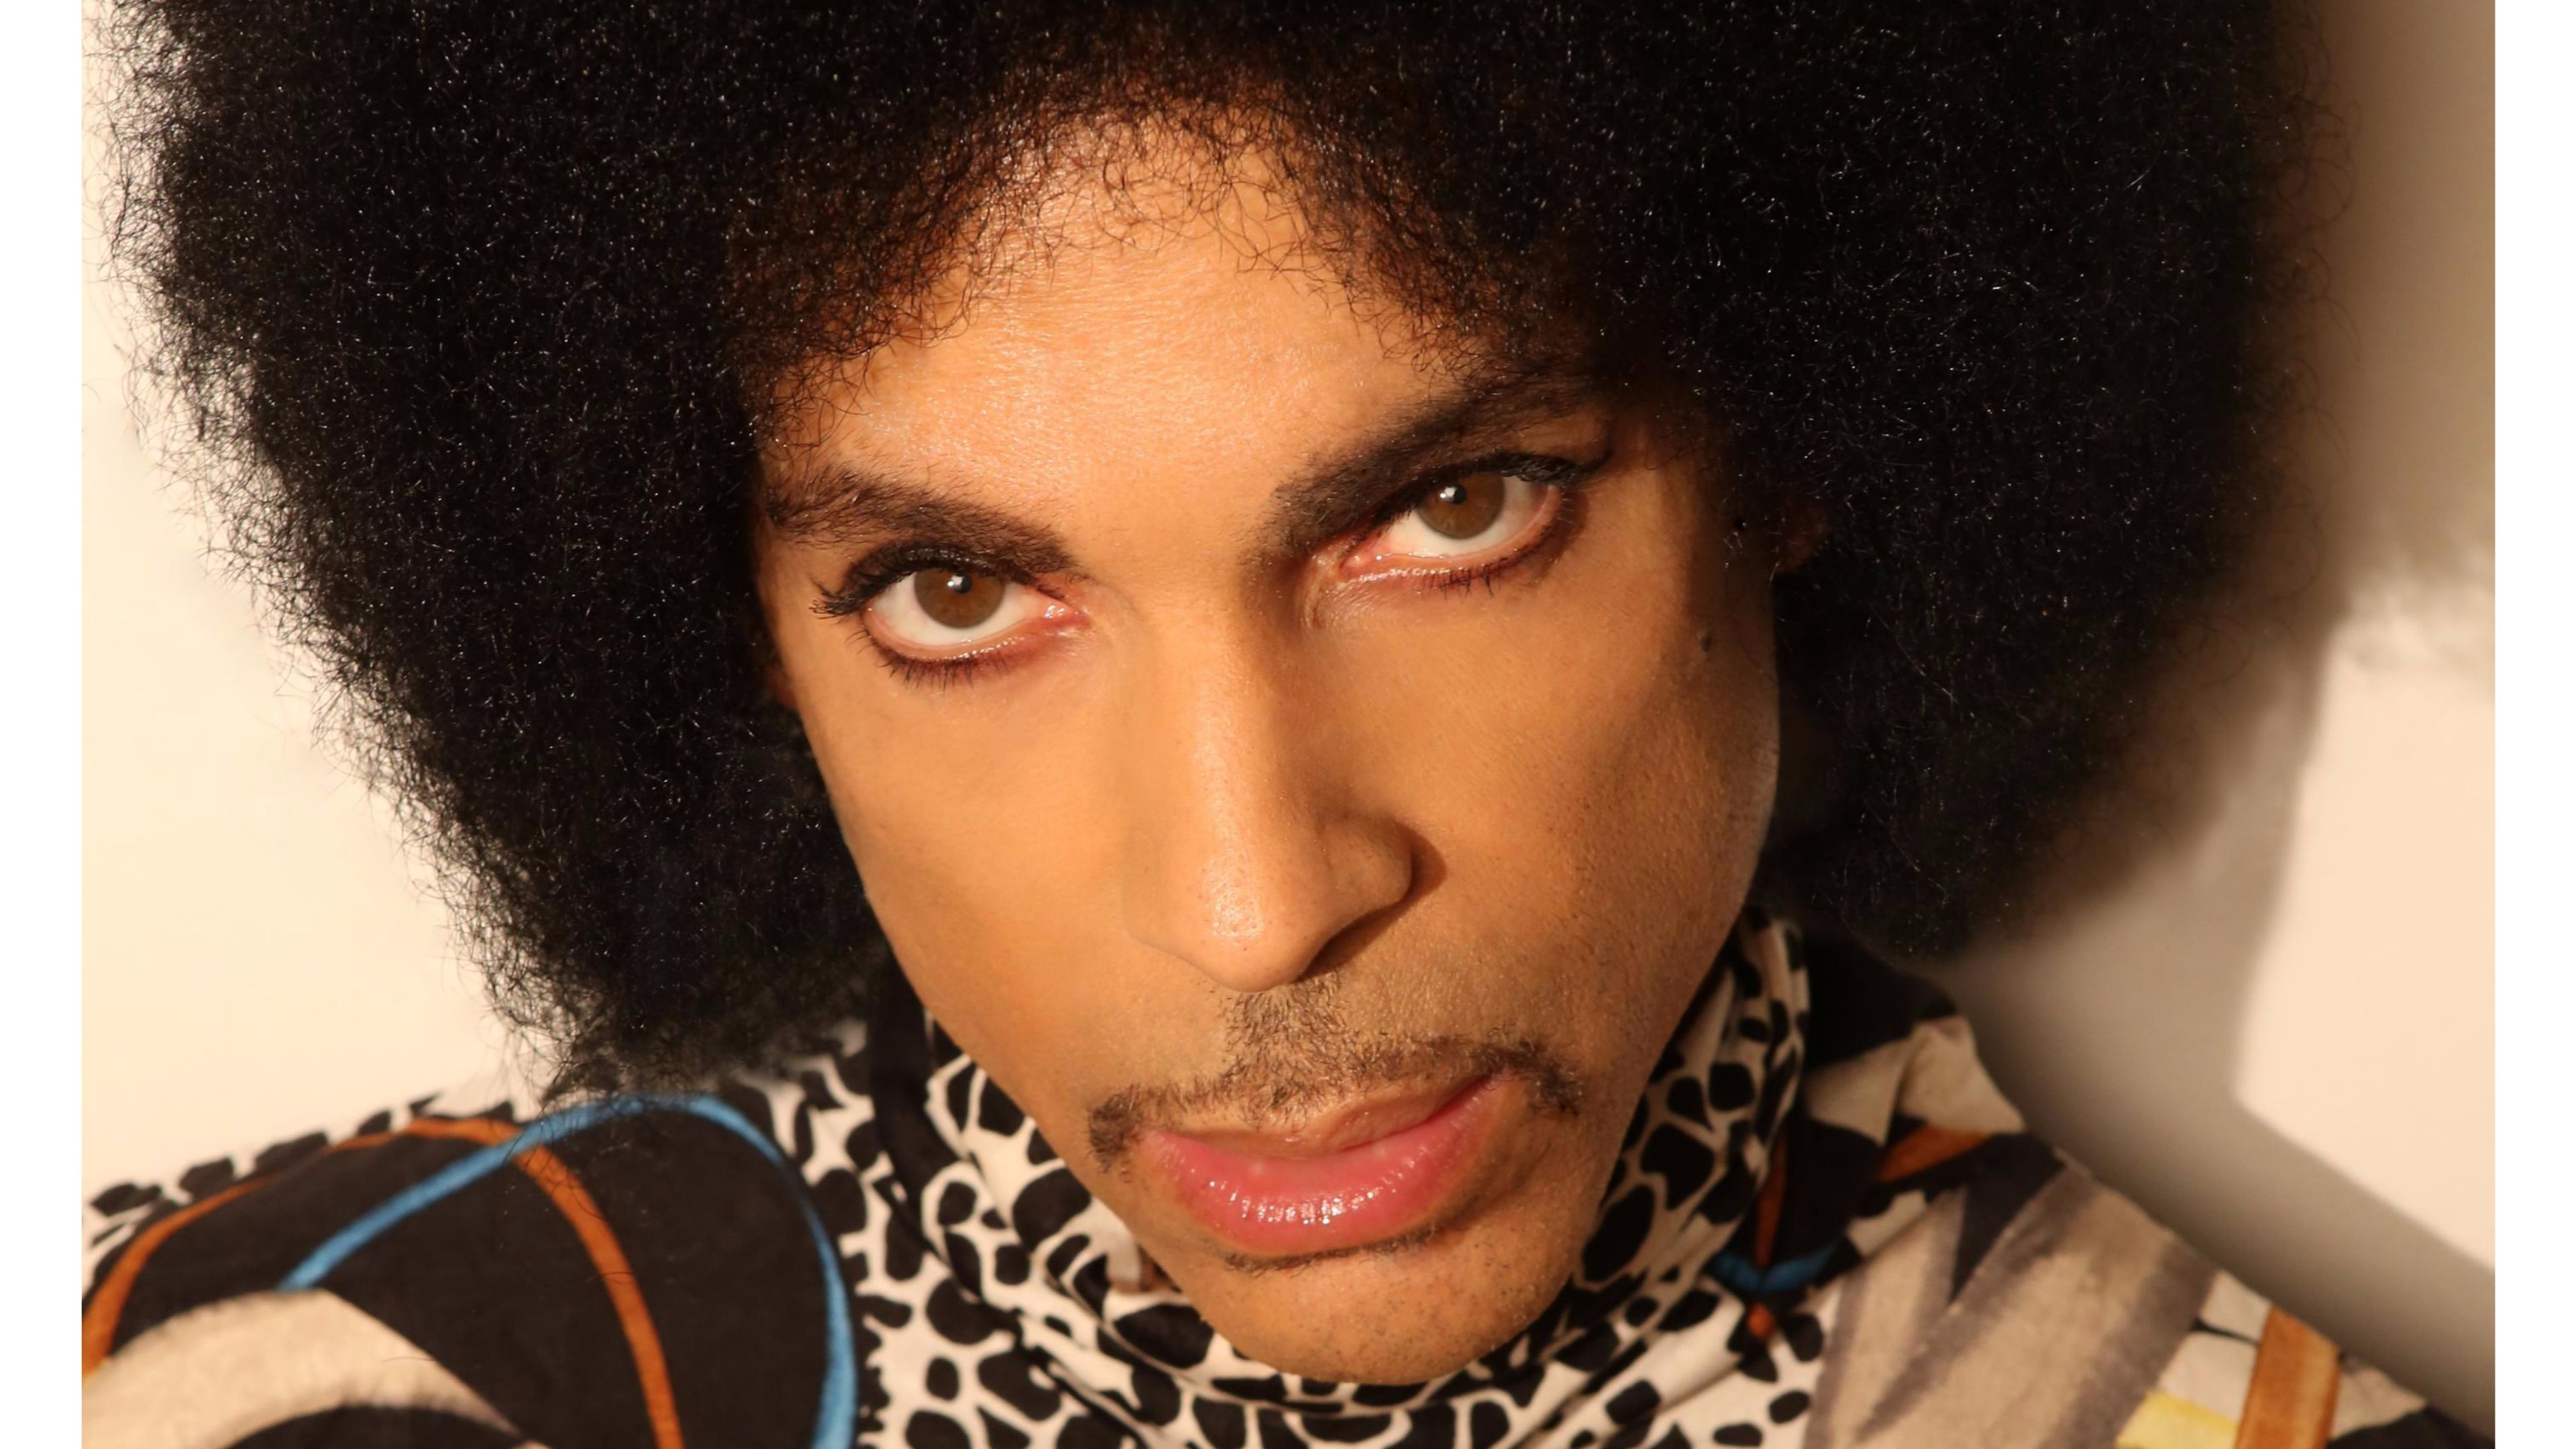 3840x2160 New 2016 Prince 4K Wallpapers